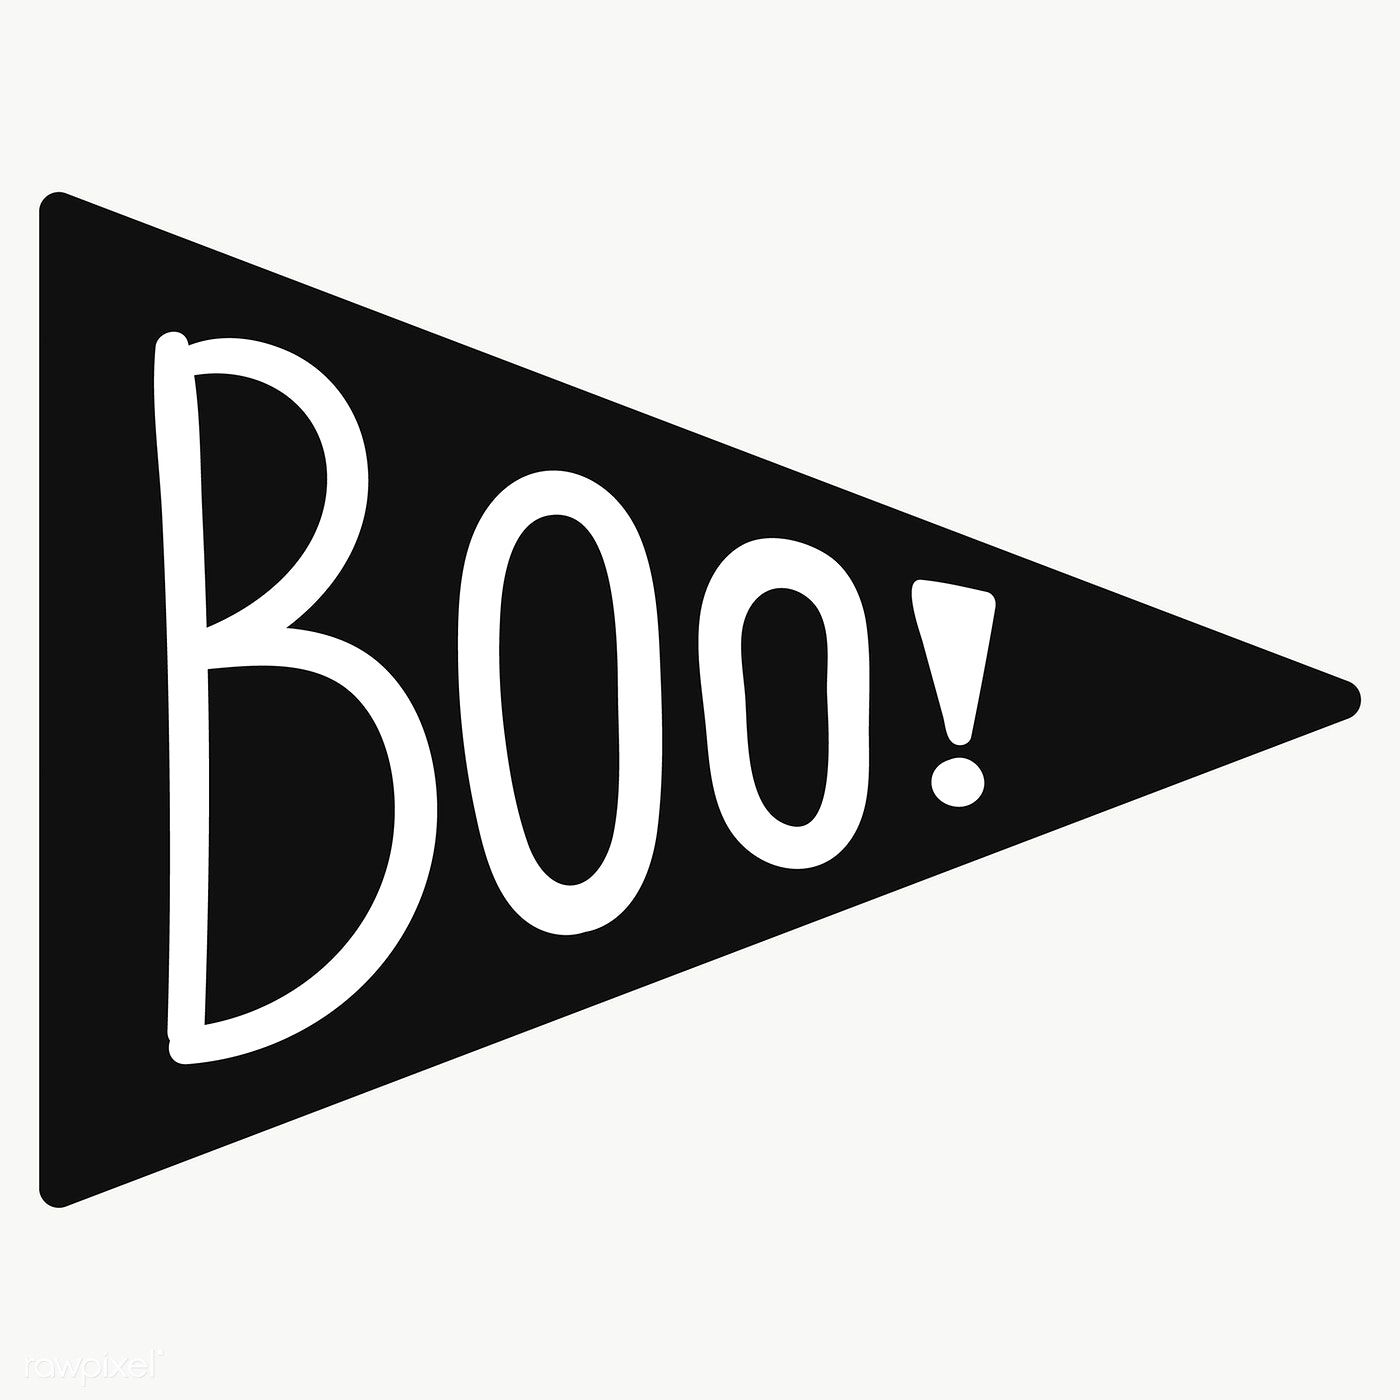 Boo Stiker Design Element Transparent Png Free Image By Rawpixel Com Chayanit Photo Booth Design Design Element Photo Booth Party Props